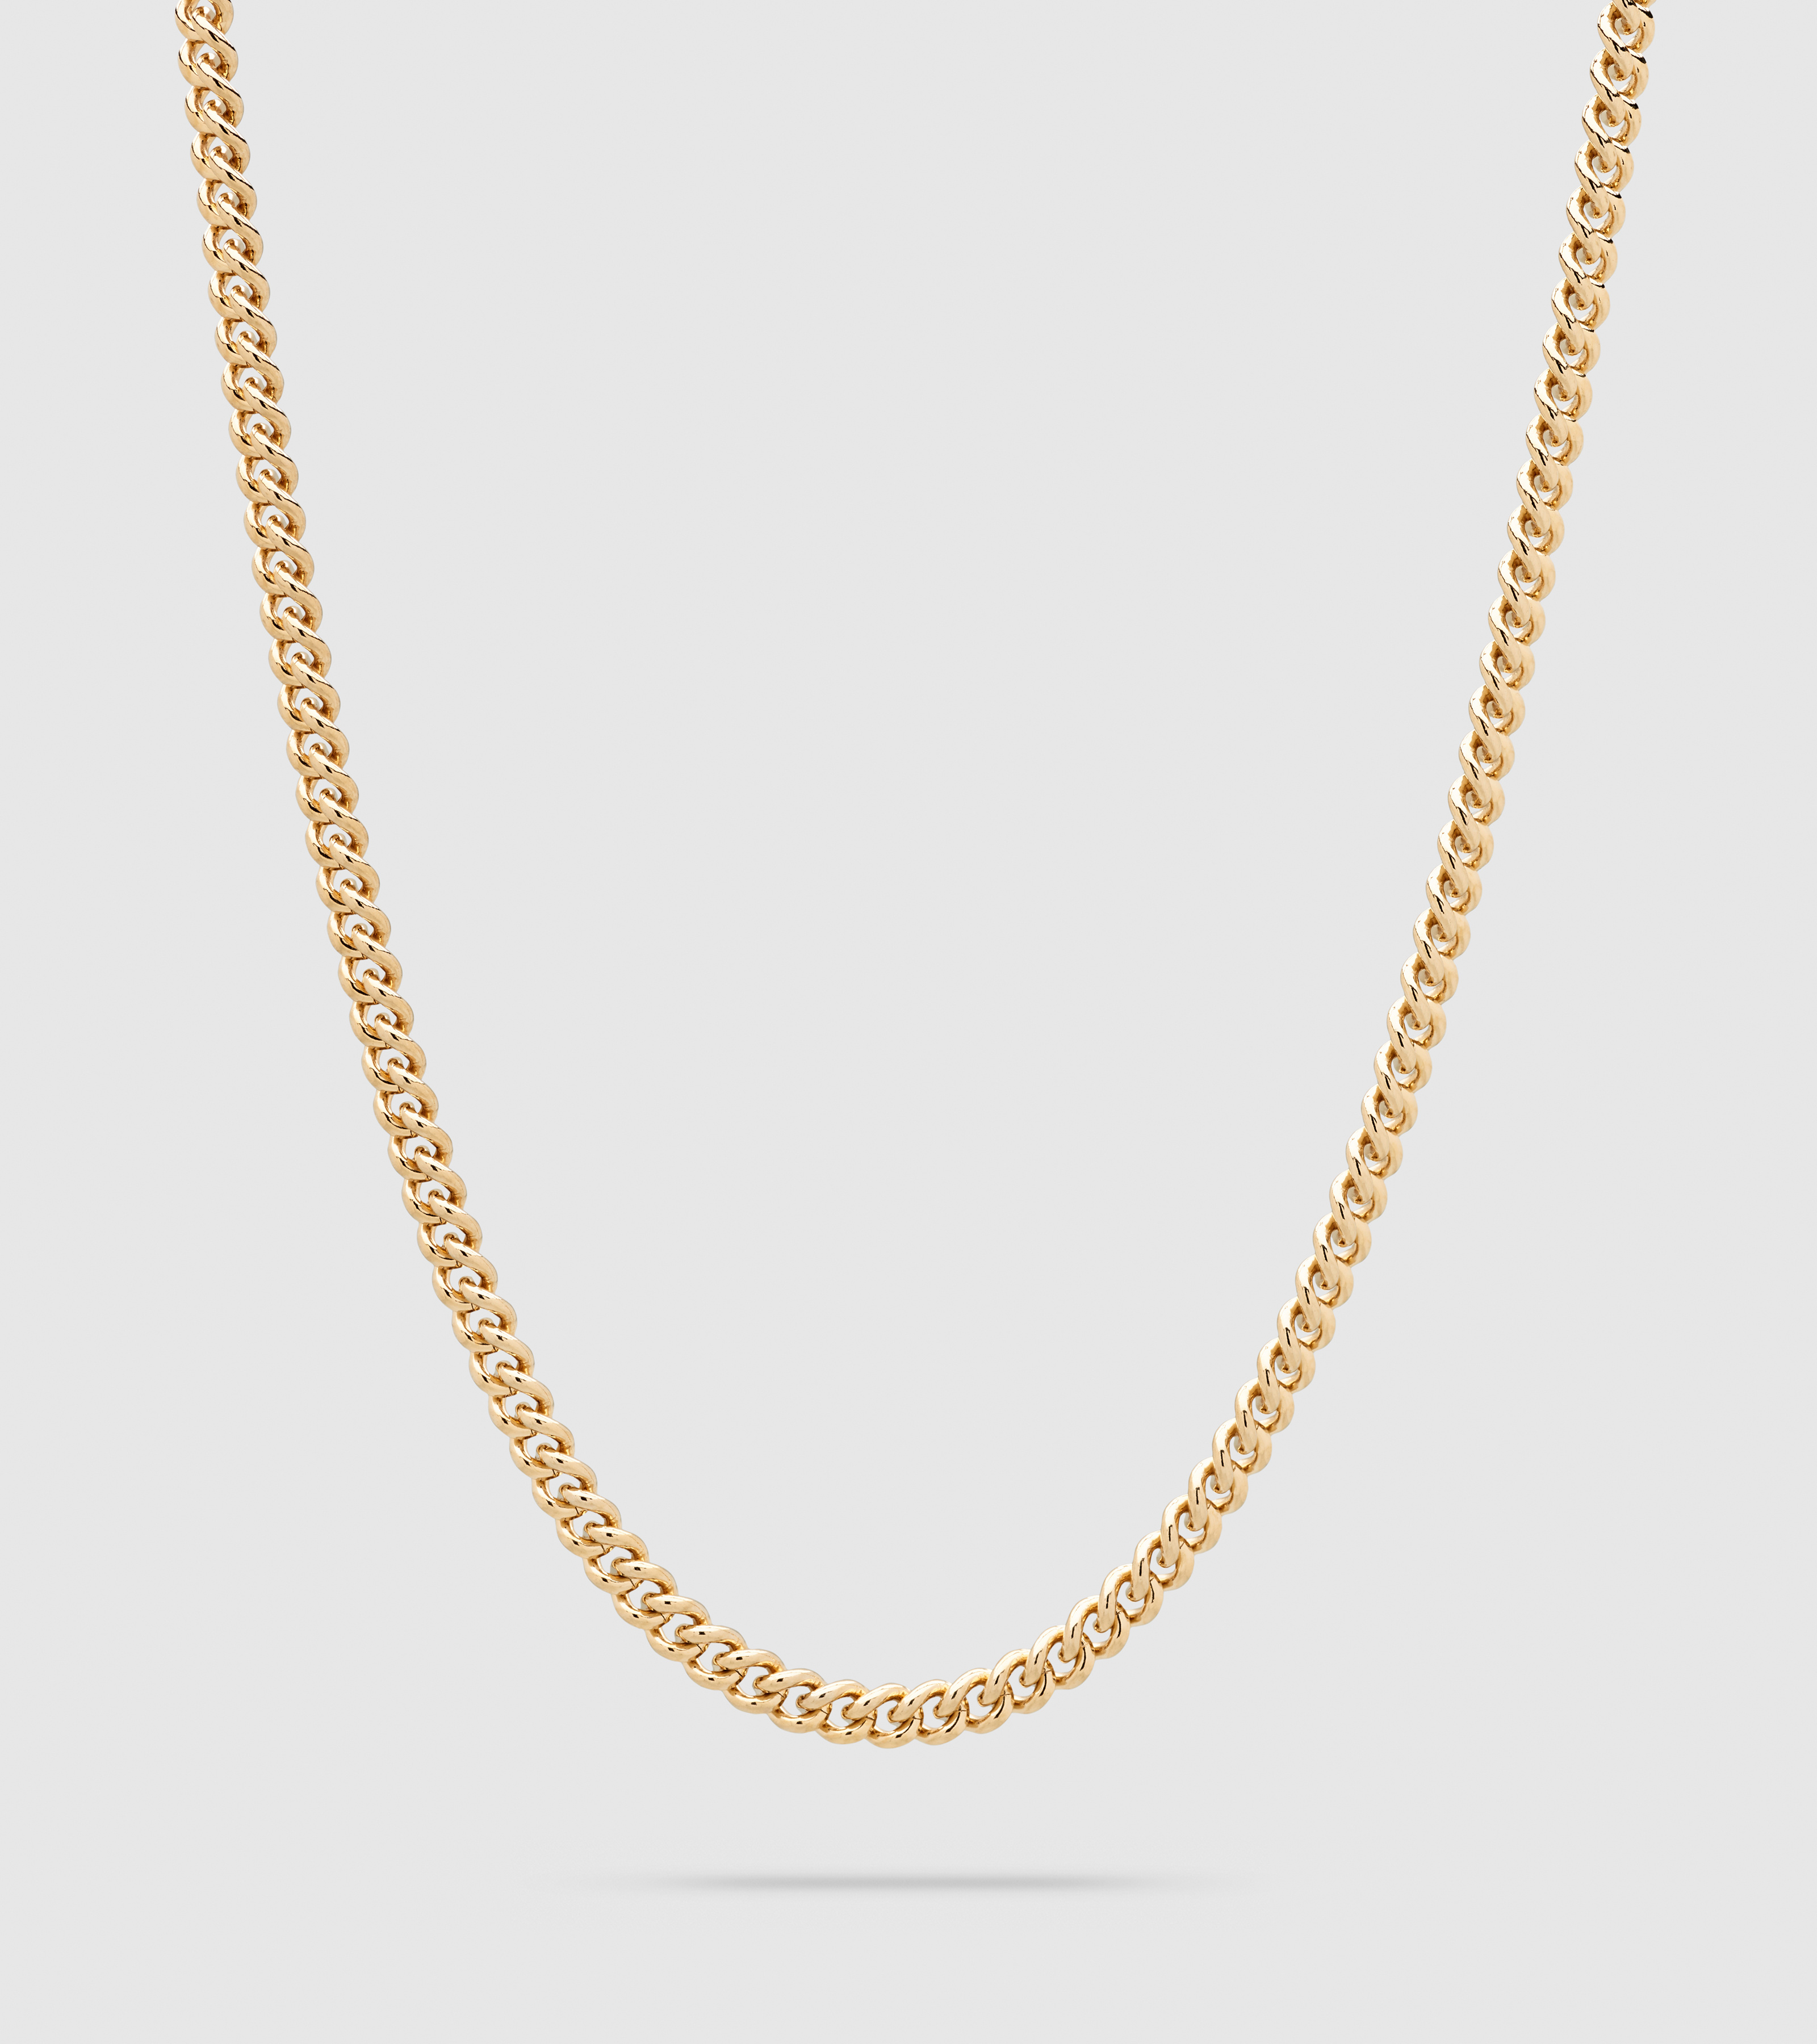 Rounded Curb Chain Thin Gold